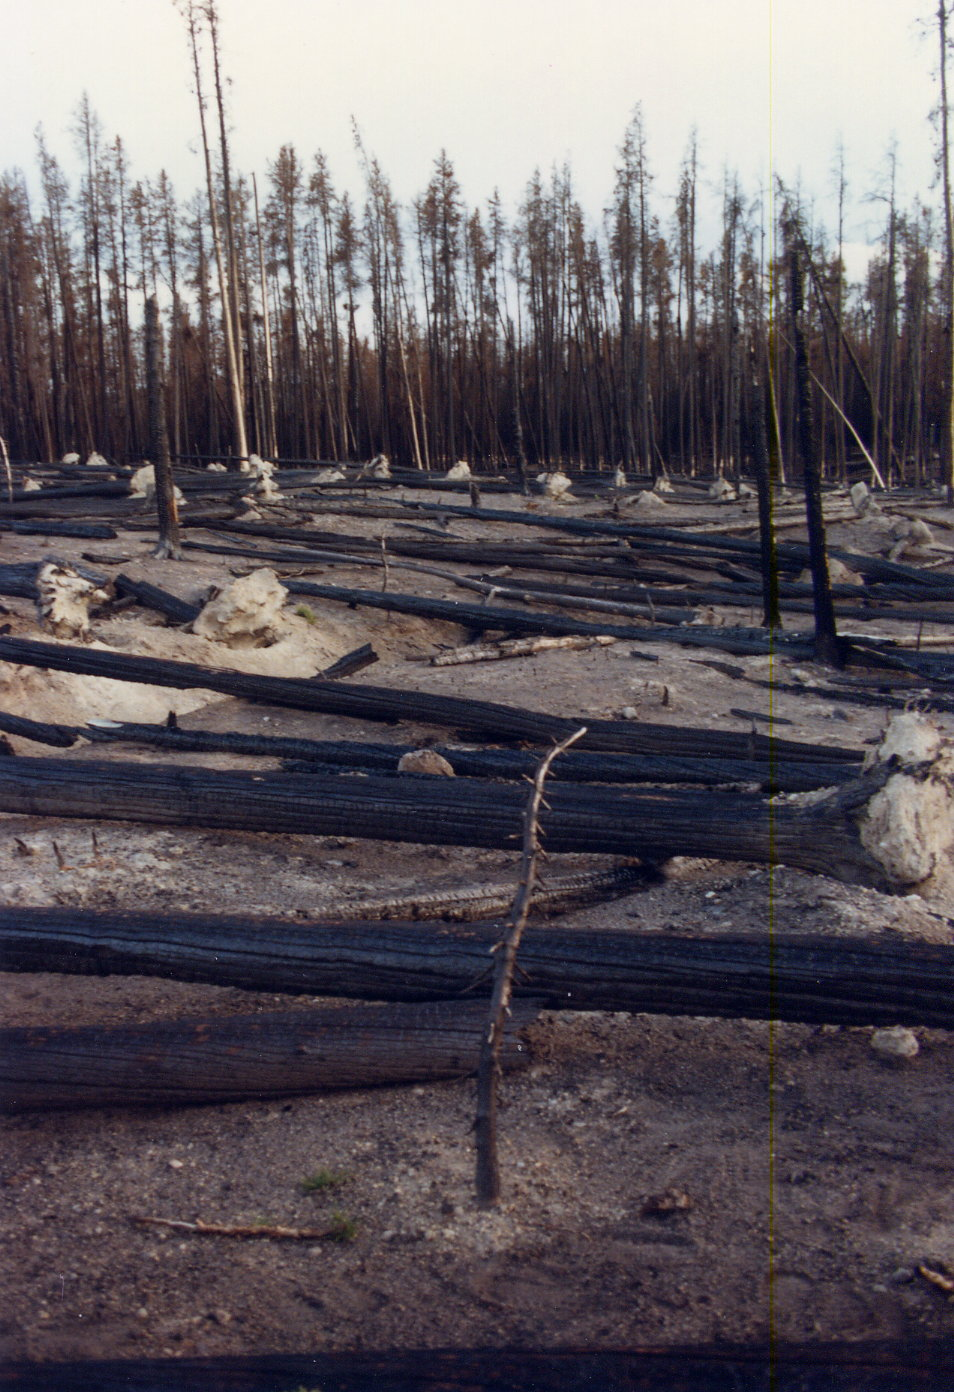 Yellowstone National Park in 1989, a year after the big fires - Copyright 1989 and 2008, Ed Darrell